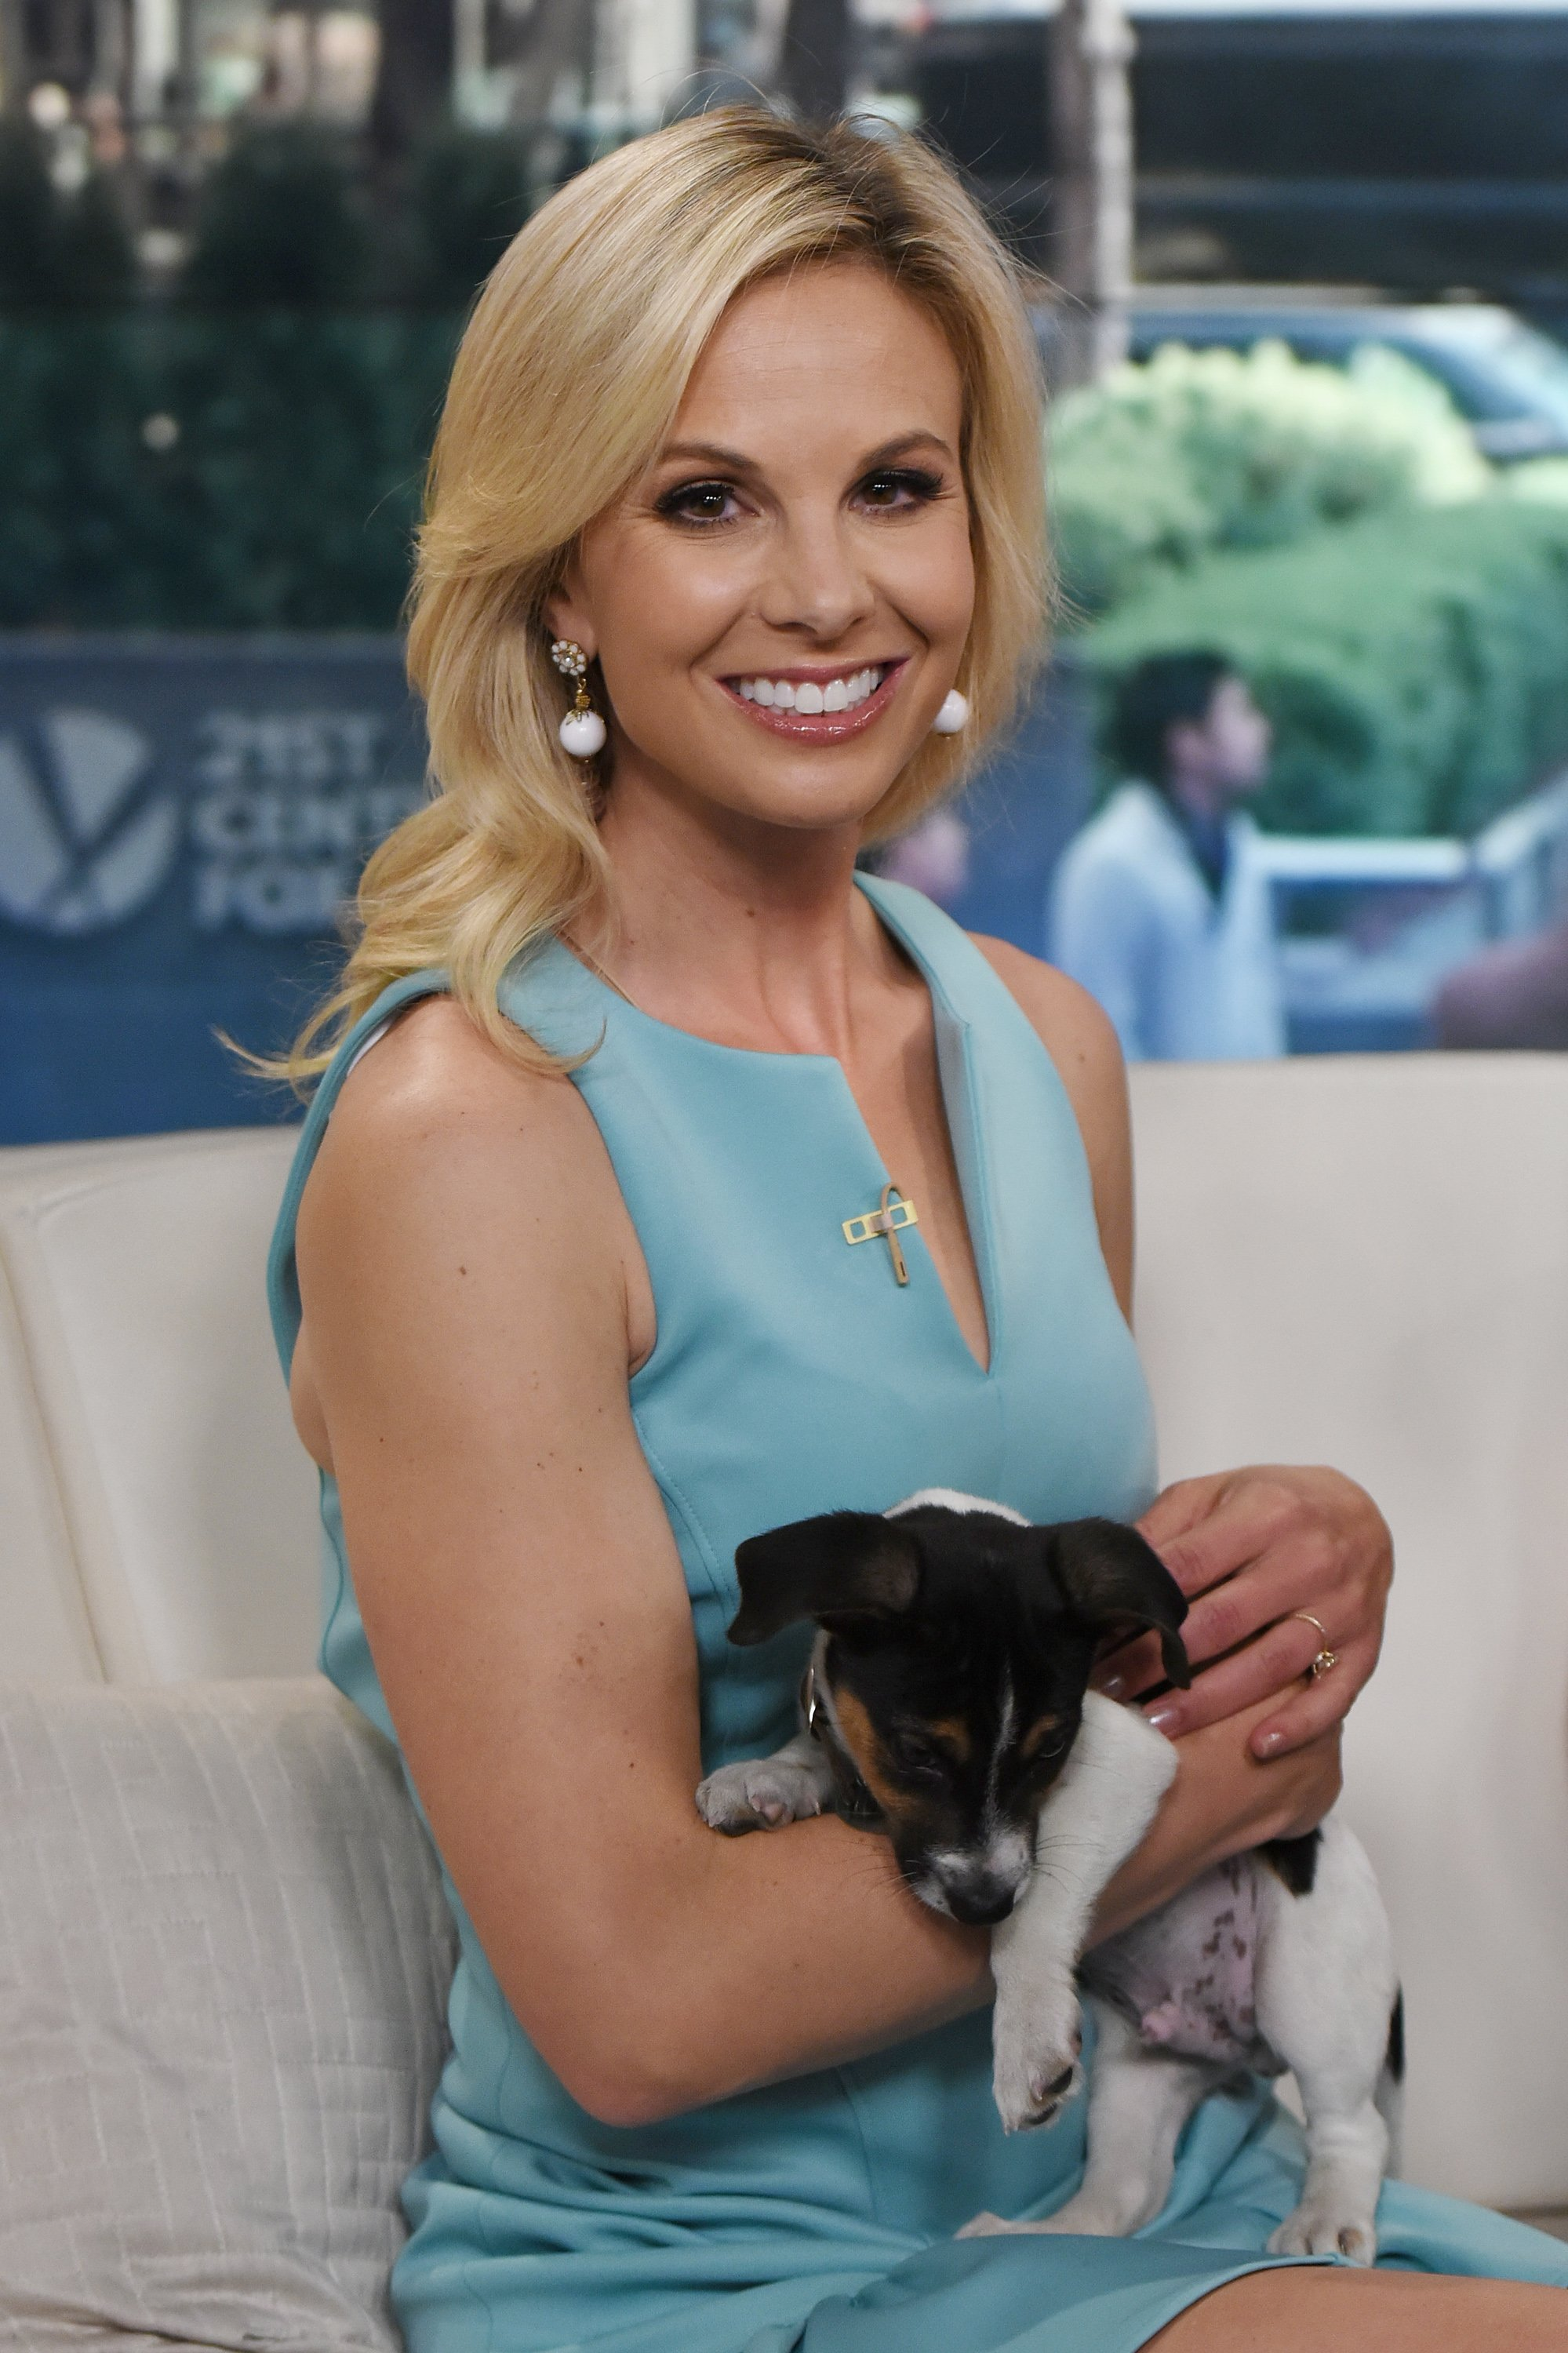 Elisabeth Hasselbeck poses for a photo during FOX and Friends at FOX Studios on May 1, 2015  | Photo: GettyImages